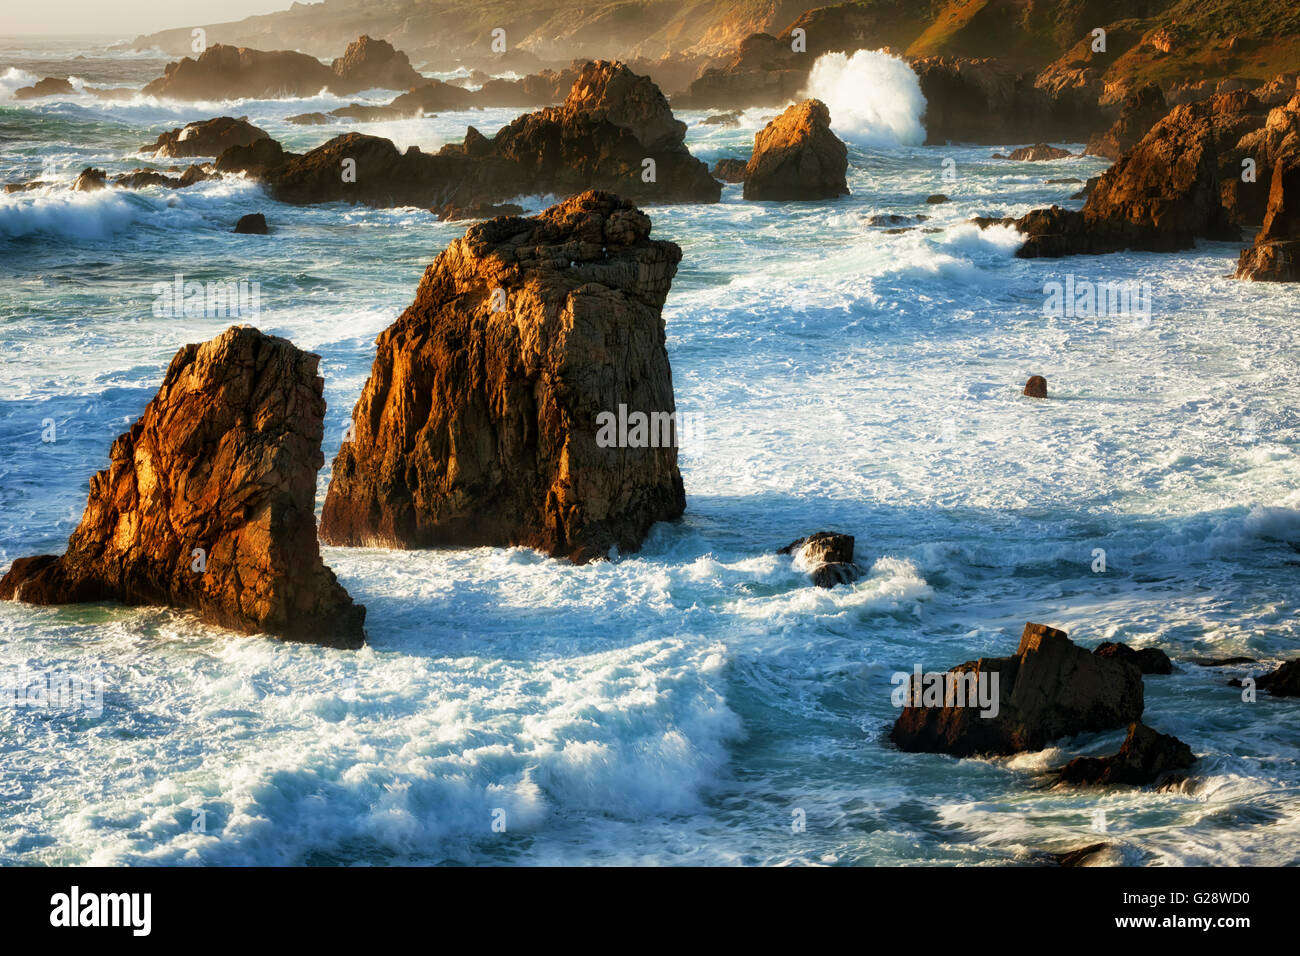 Evening light beauty on the crashing waves and sea stacks at Garrapata State Park along California's Big Sur Coast. - Stock Image